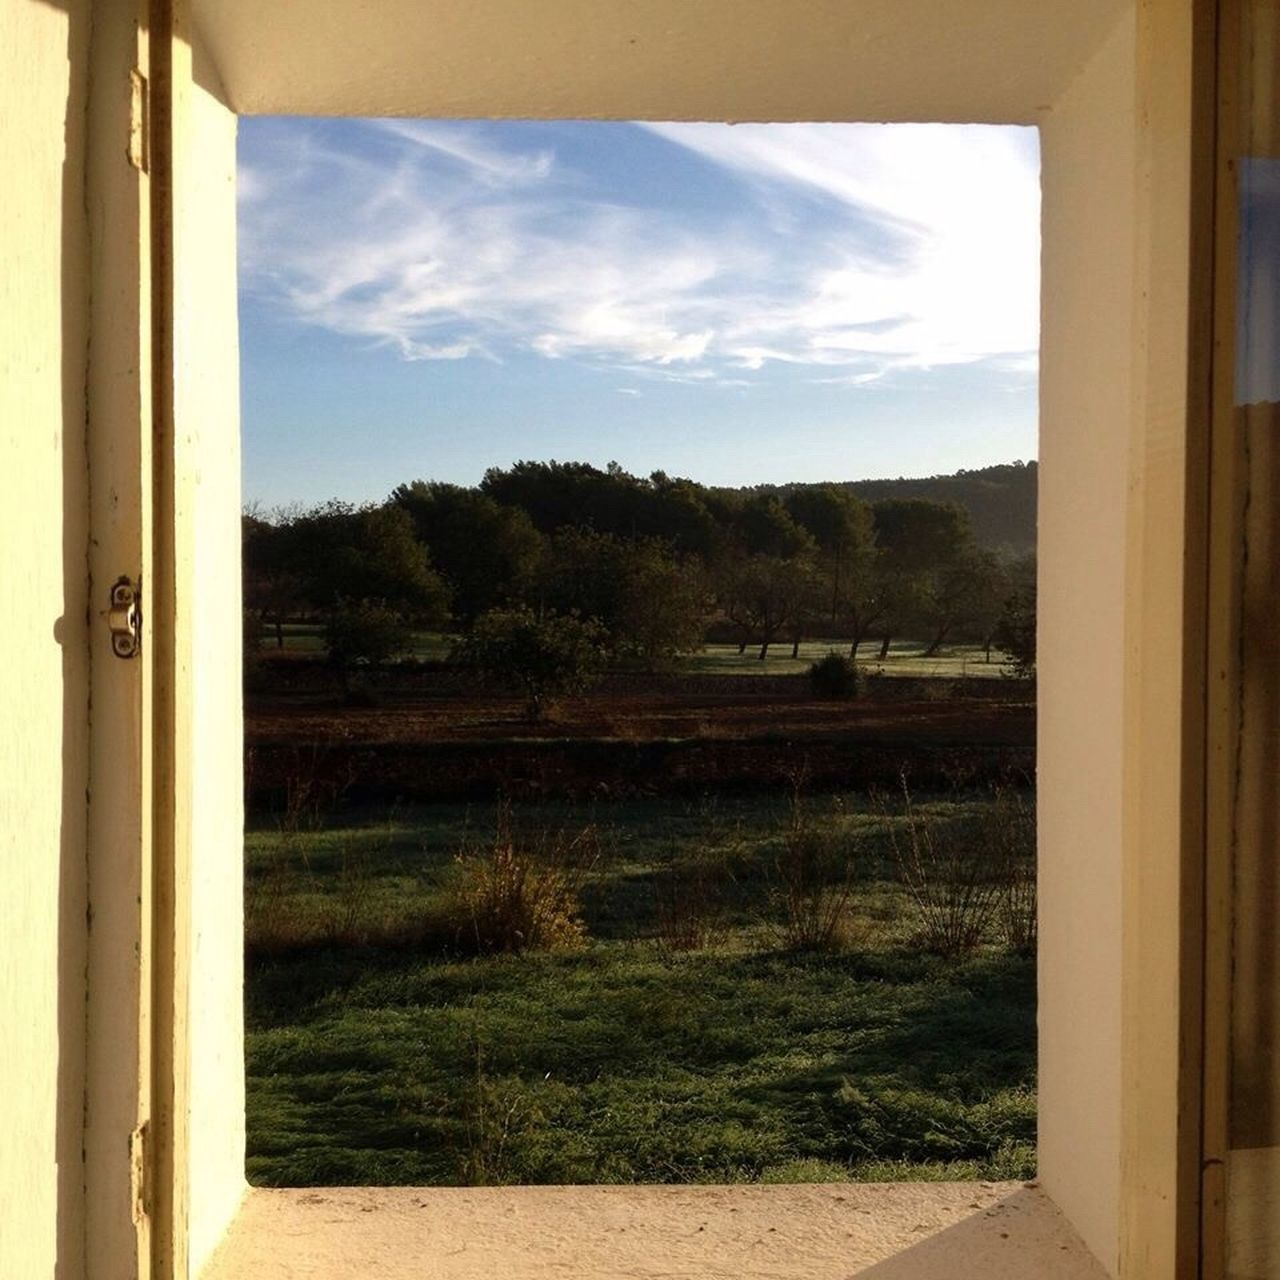 Window To The World Good Morning Ibiza Campo Life Nature View Ibiza Landscape Hay Bales Silence Peaceful Green Grass Trees And Sky Morning Dew Morning Light Old Stone Wall Creative Light And Shadow Deceptively Simple Still Life Photography Still Life